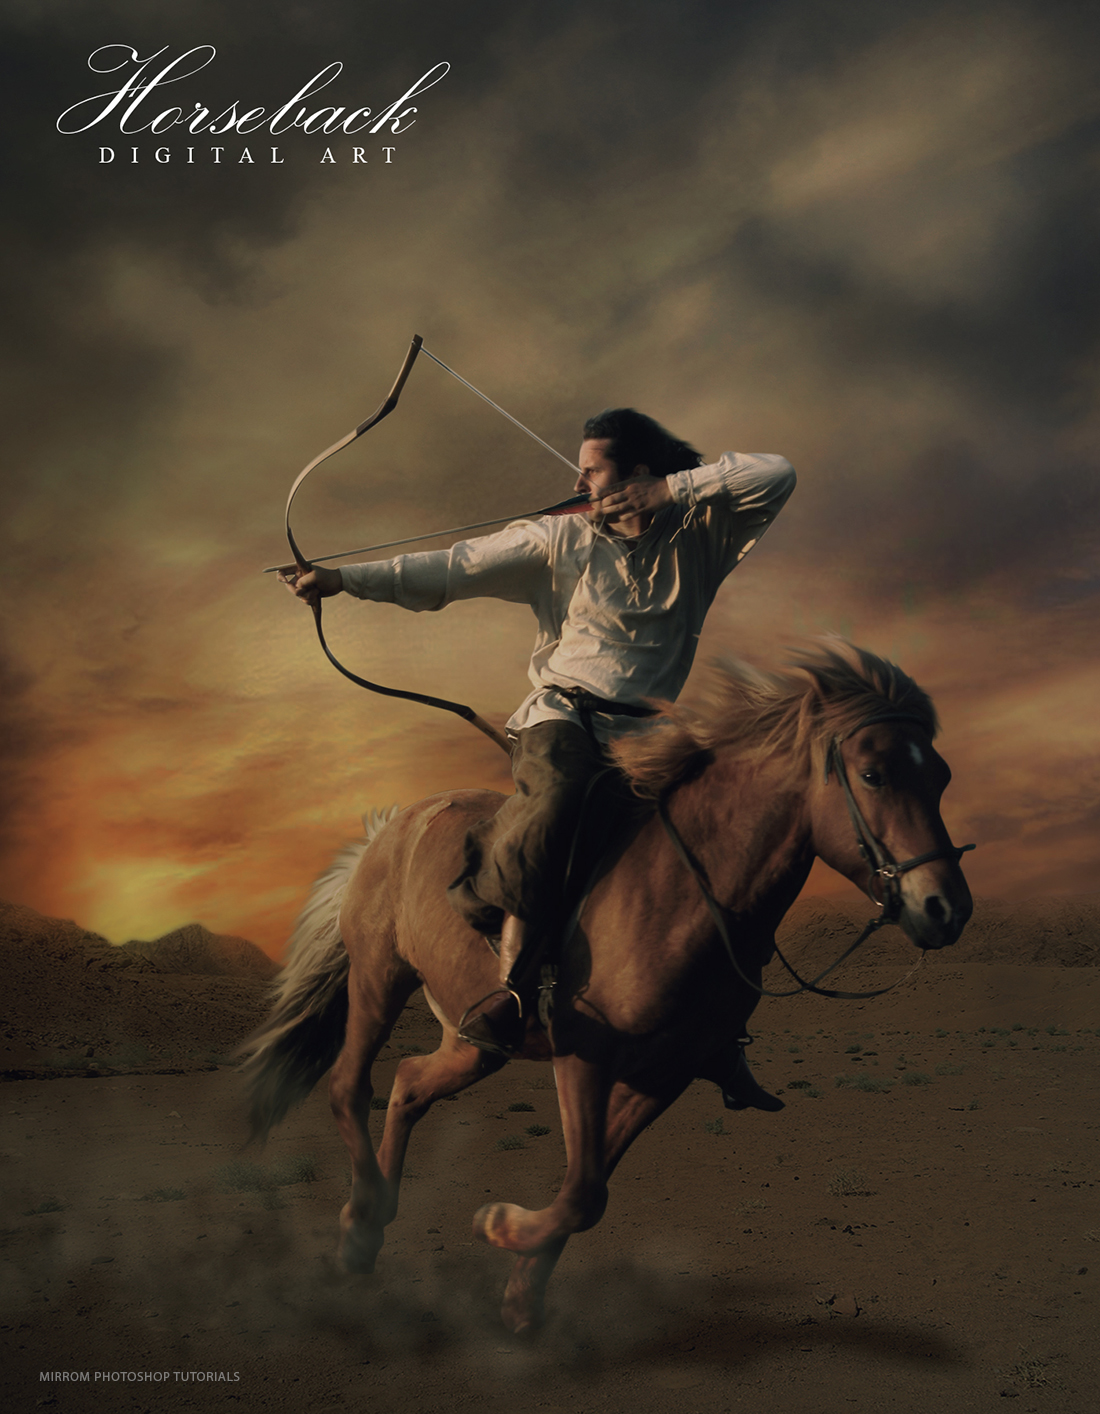 Create A Horseback Digital Art Photo Manipulation In Photoshop